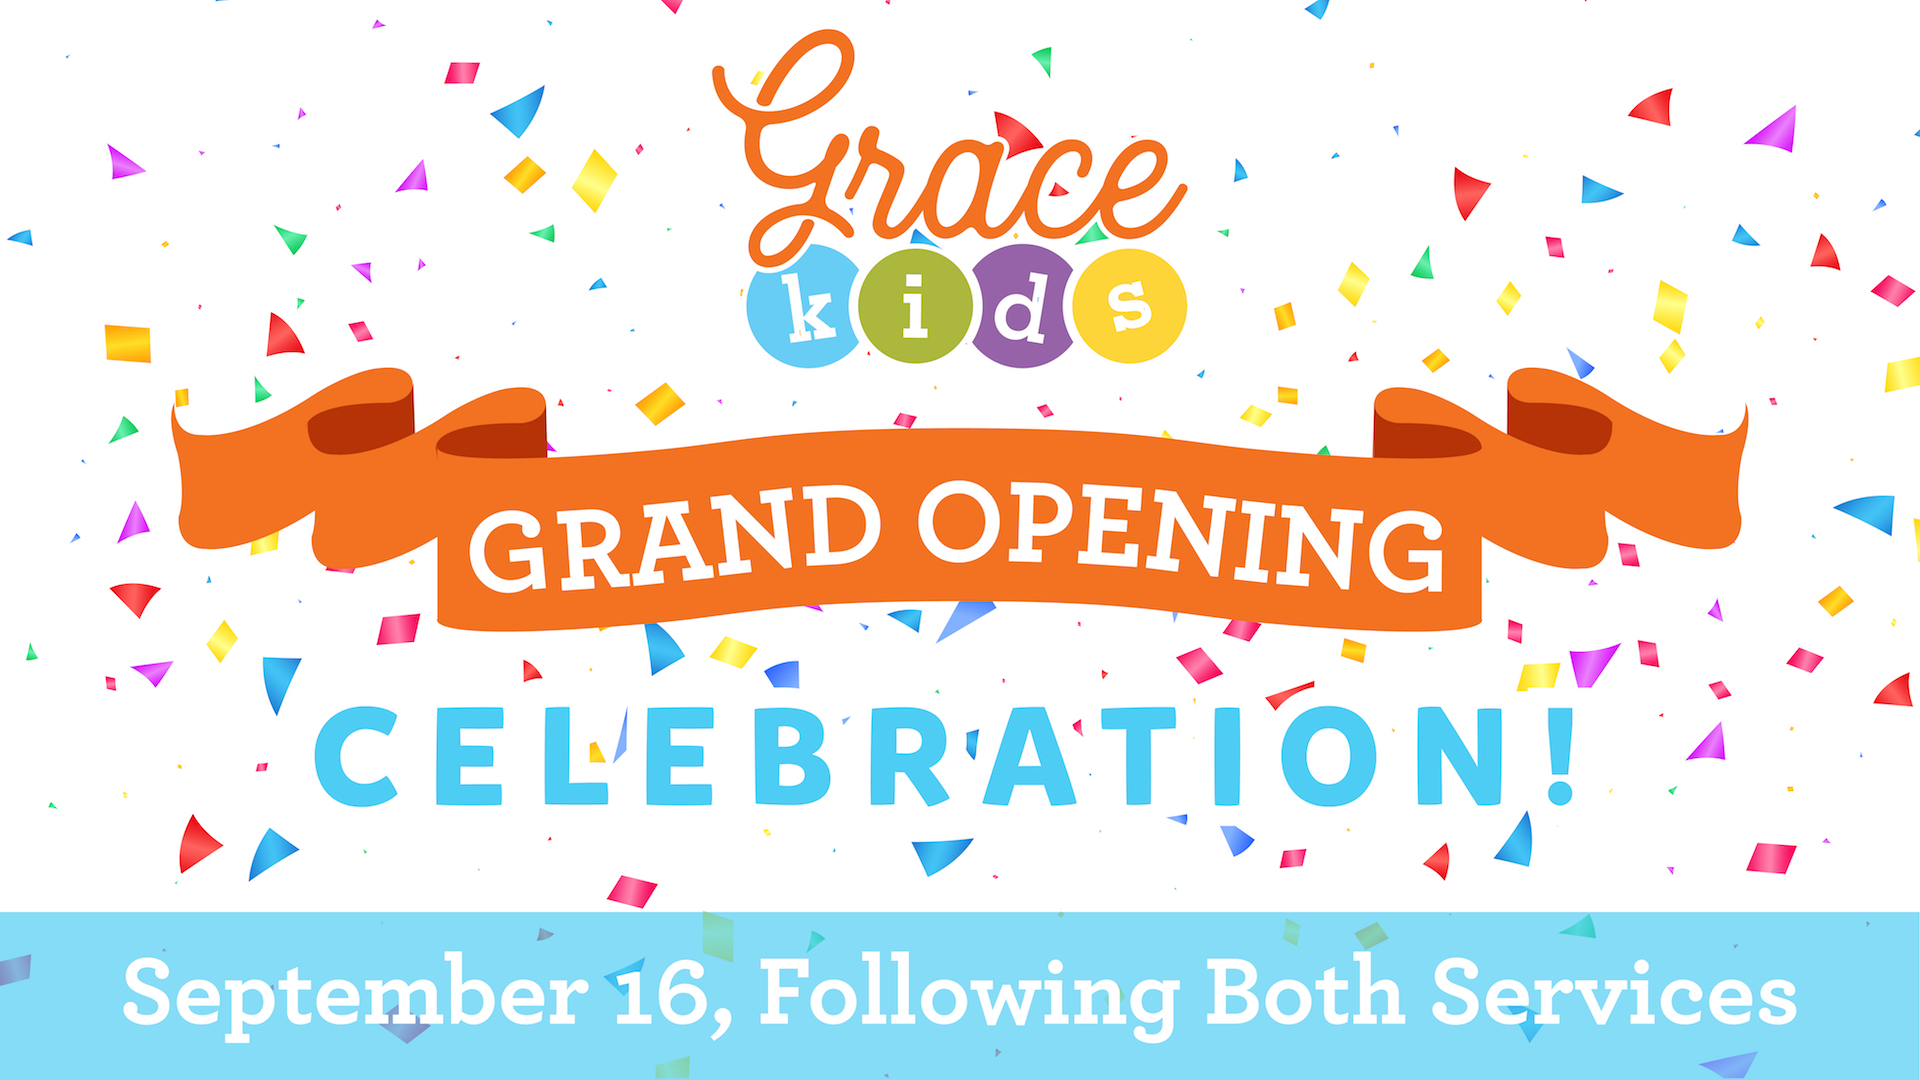 Gracs Kids Grand Opening Celebration.jpg